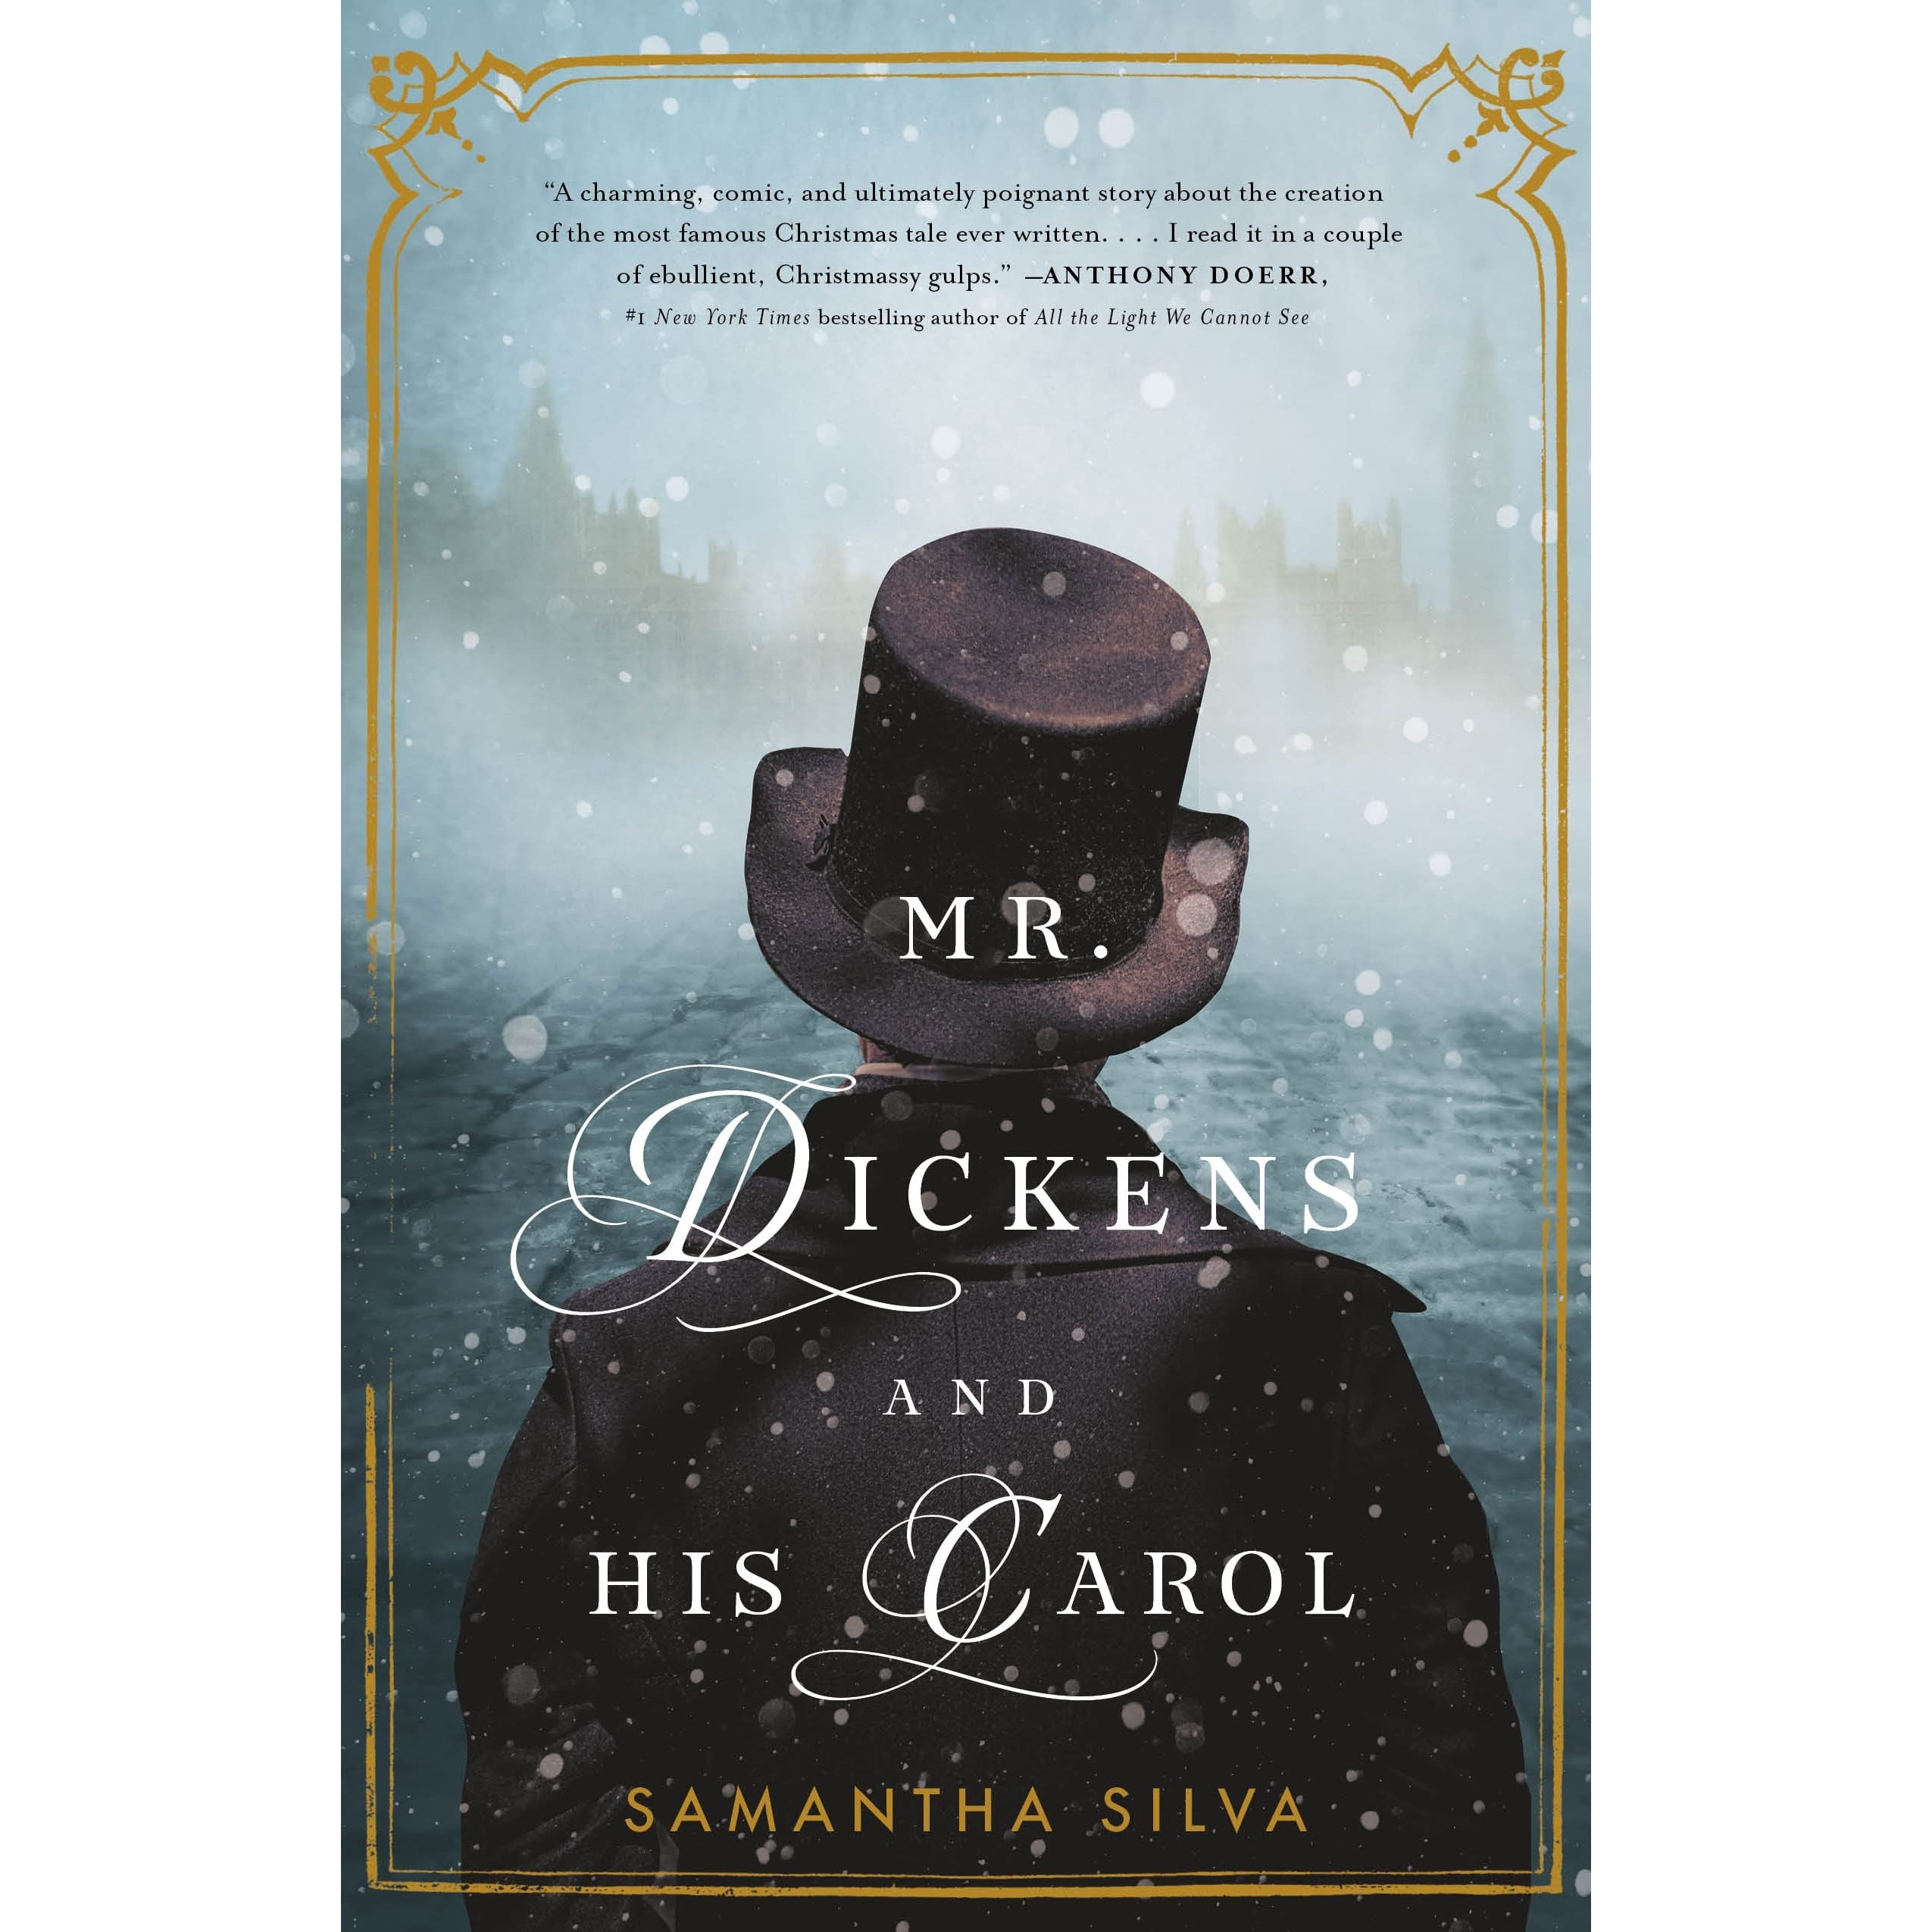 Mr Dickens and His Carol A Novel by Samantha Silva